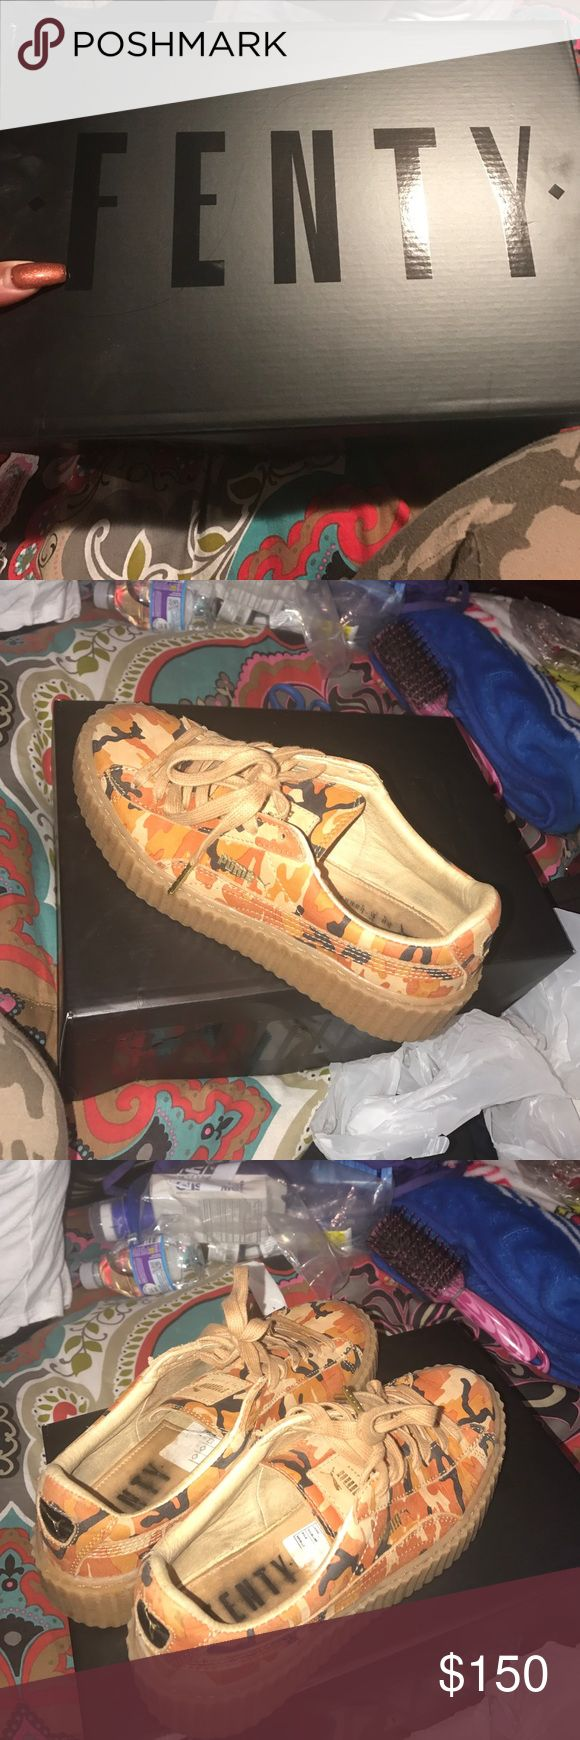 Rihanna Puma Suede Creepers Camo One worn a few times extra laces included size 7.5 hate to let them go but really need the cash so make some offers deadstock Puma Shoes Sneakers